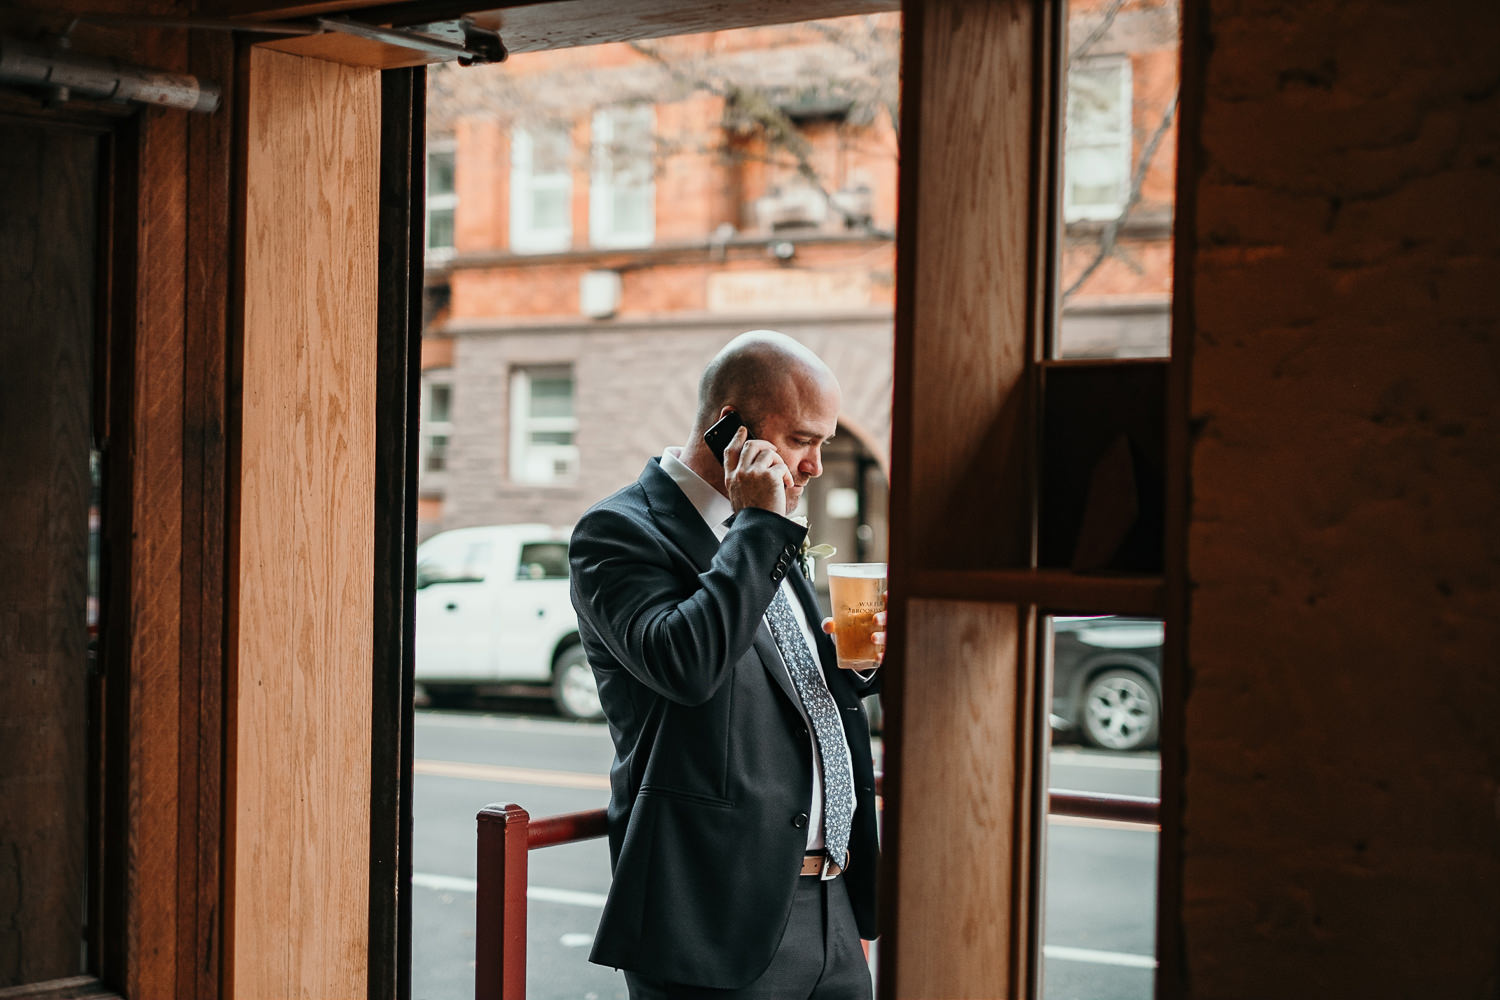 groom outside of bar on phone holding beer